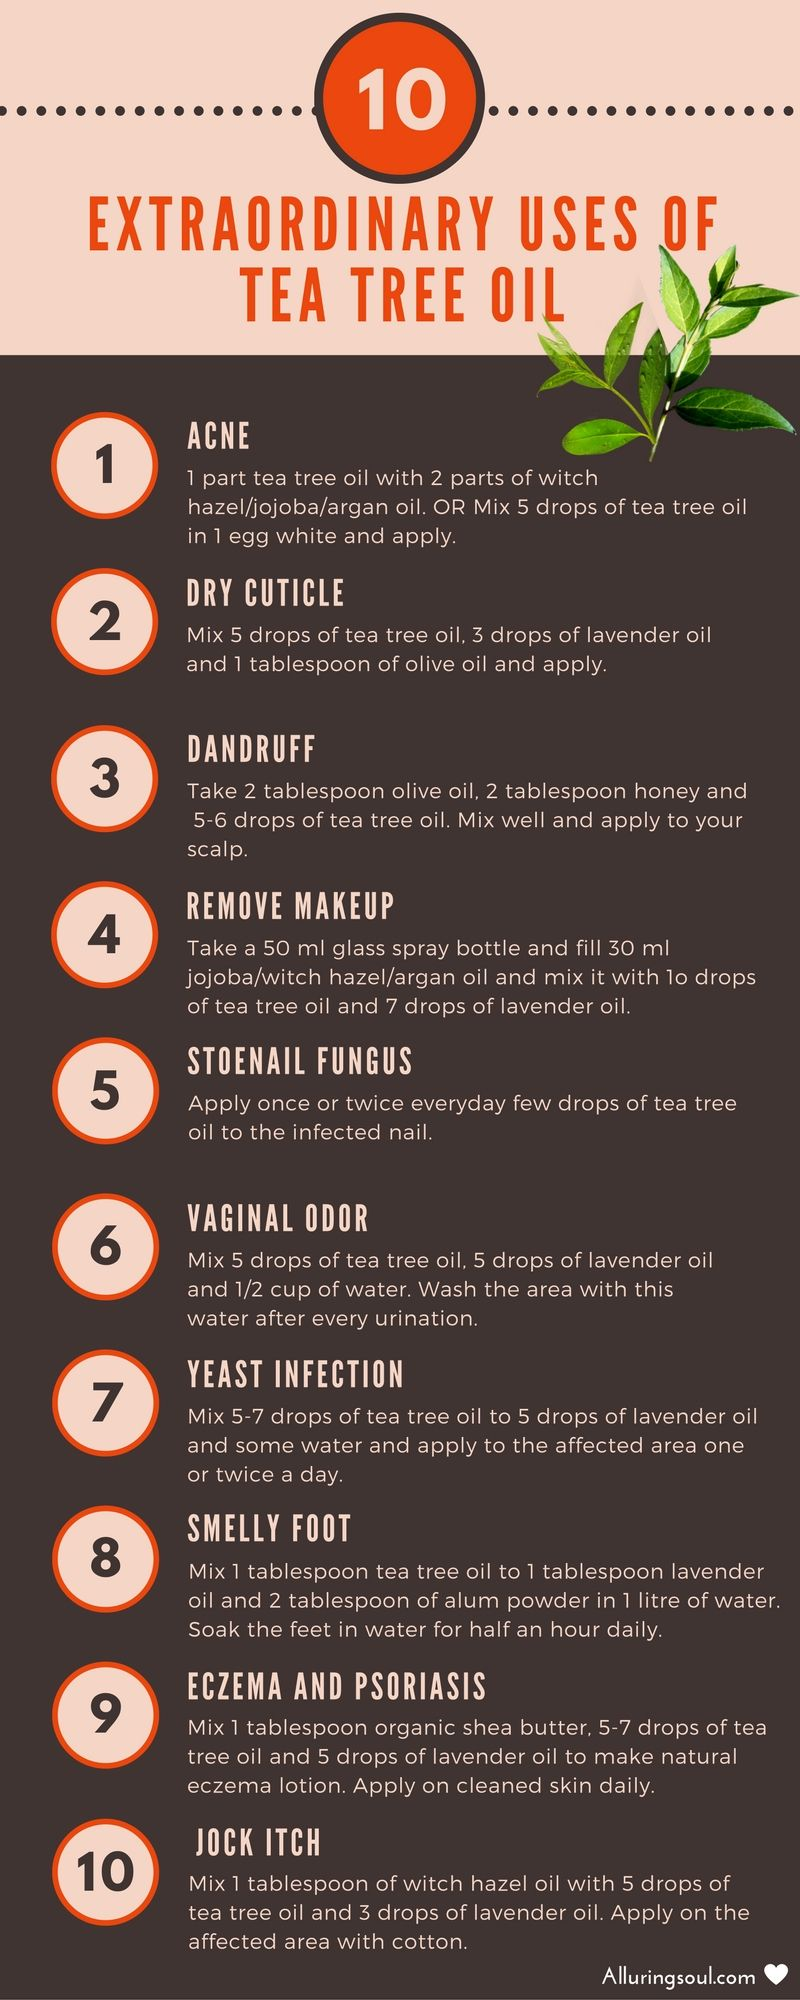 Amazing Benefits of Using Tea Tree Oil Amazing Benefits of Using Tea Tree Oil new pics